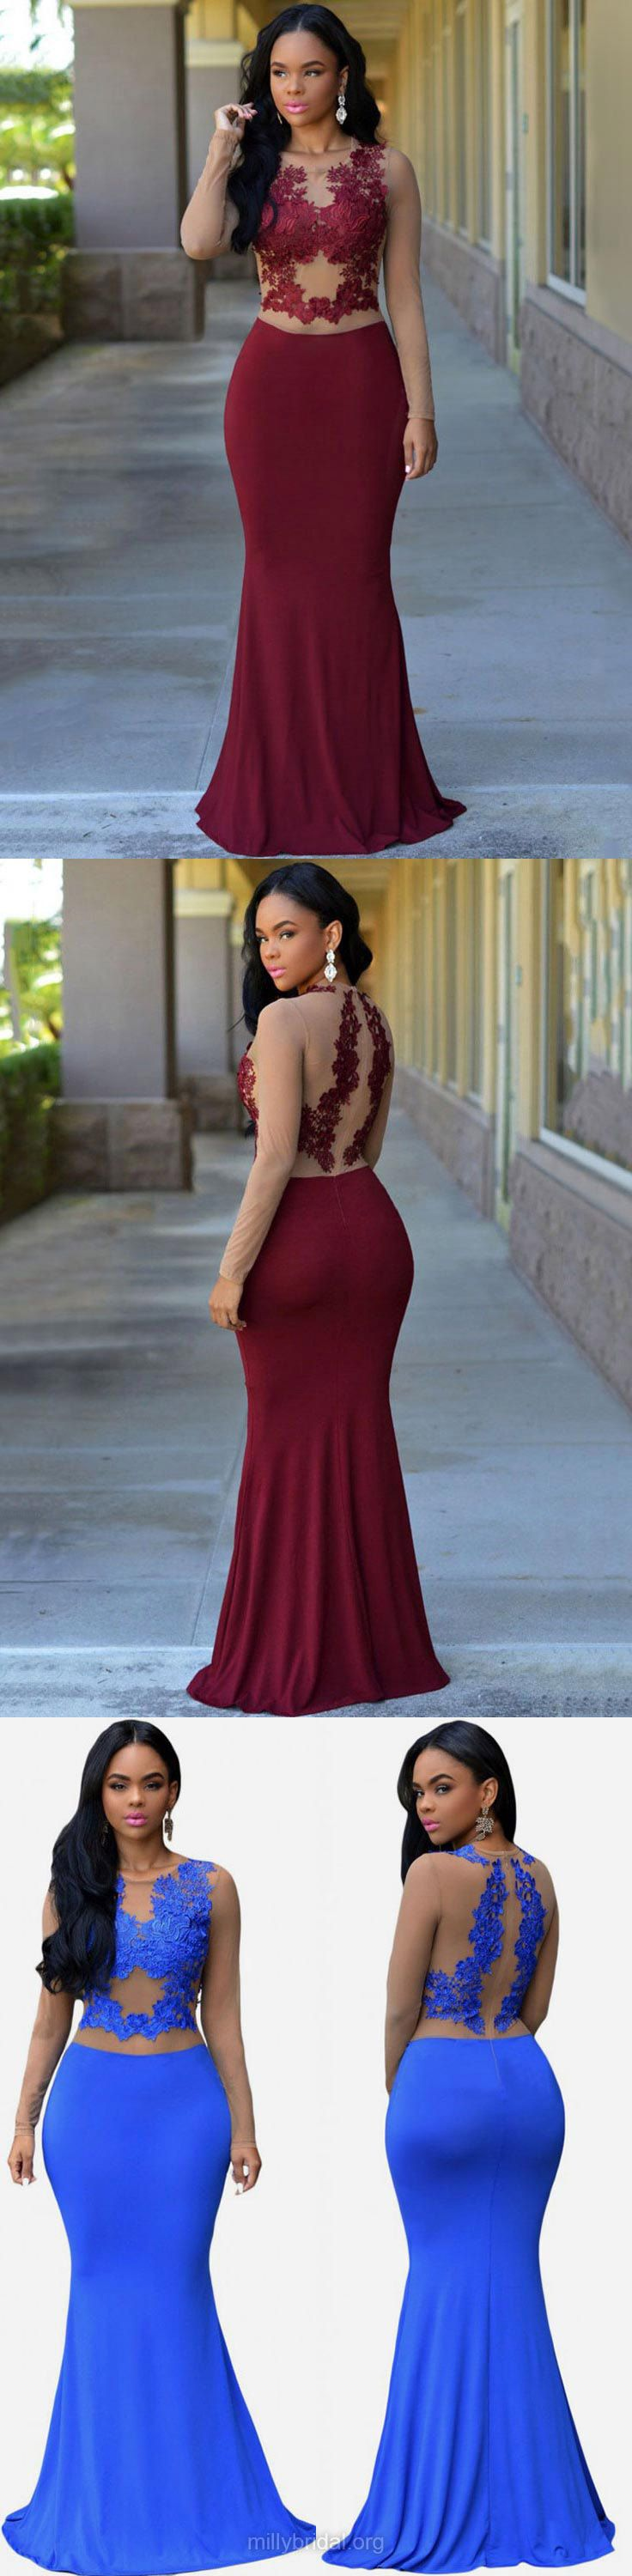 Burgundy Prom Dresses, Long Prom Dresses, Trumpet/Mermaid Prom Dresses Scoop Neck, Jersey Prom Dresses For Teens, Modest Prom Dresses Lace #Burgundydress #longdresses